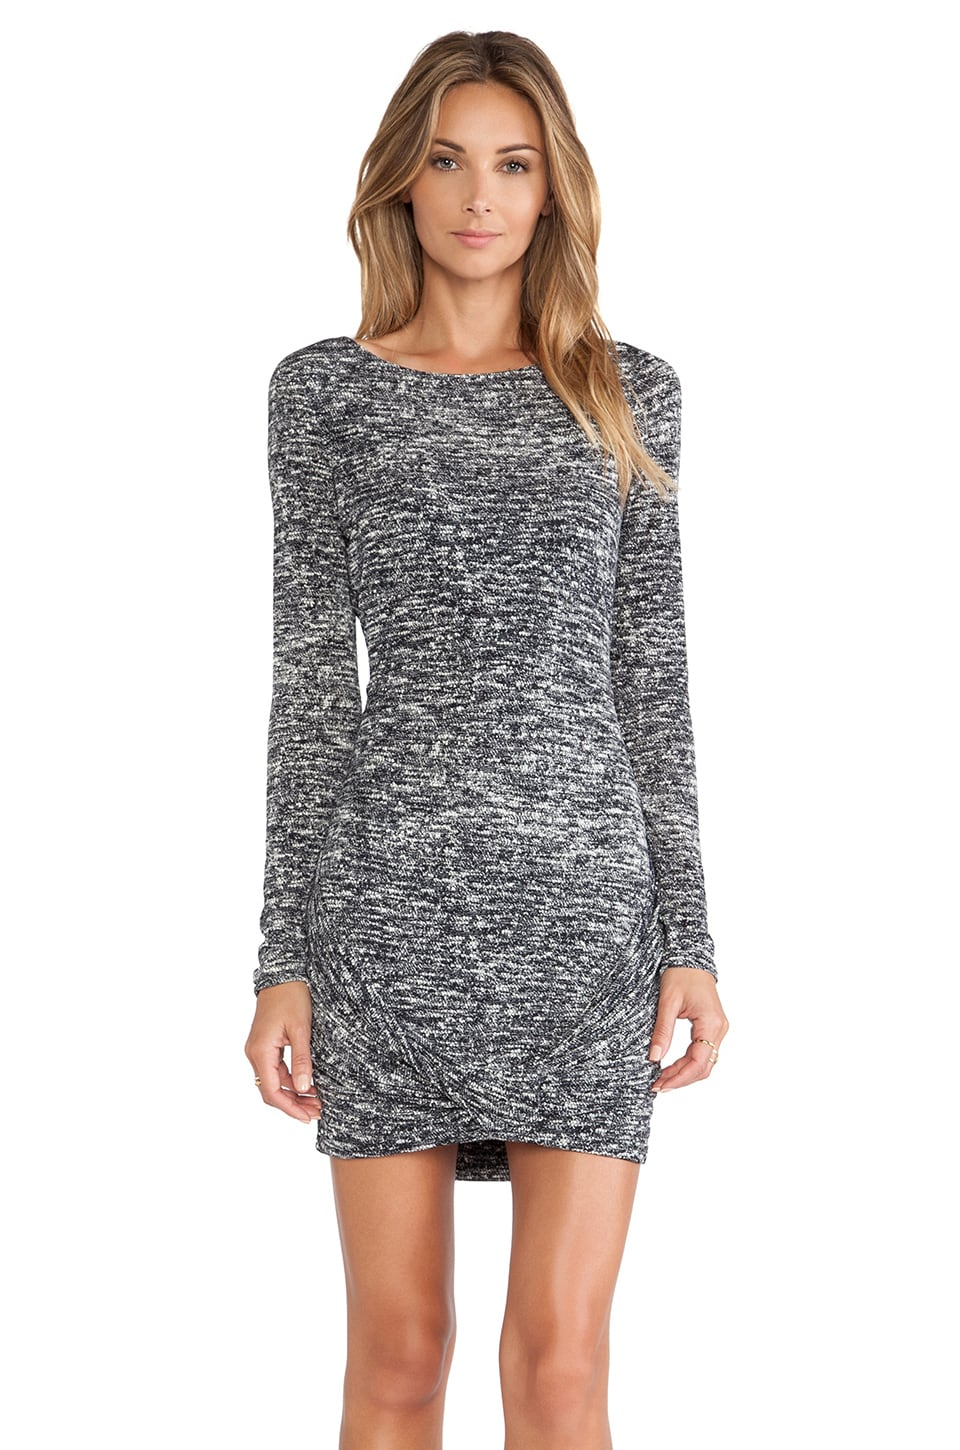 Halston Heritage Twist Drape Skirt Boatneck Dress in Grey Woven Slub Print